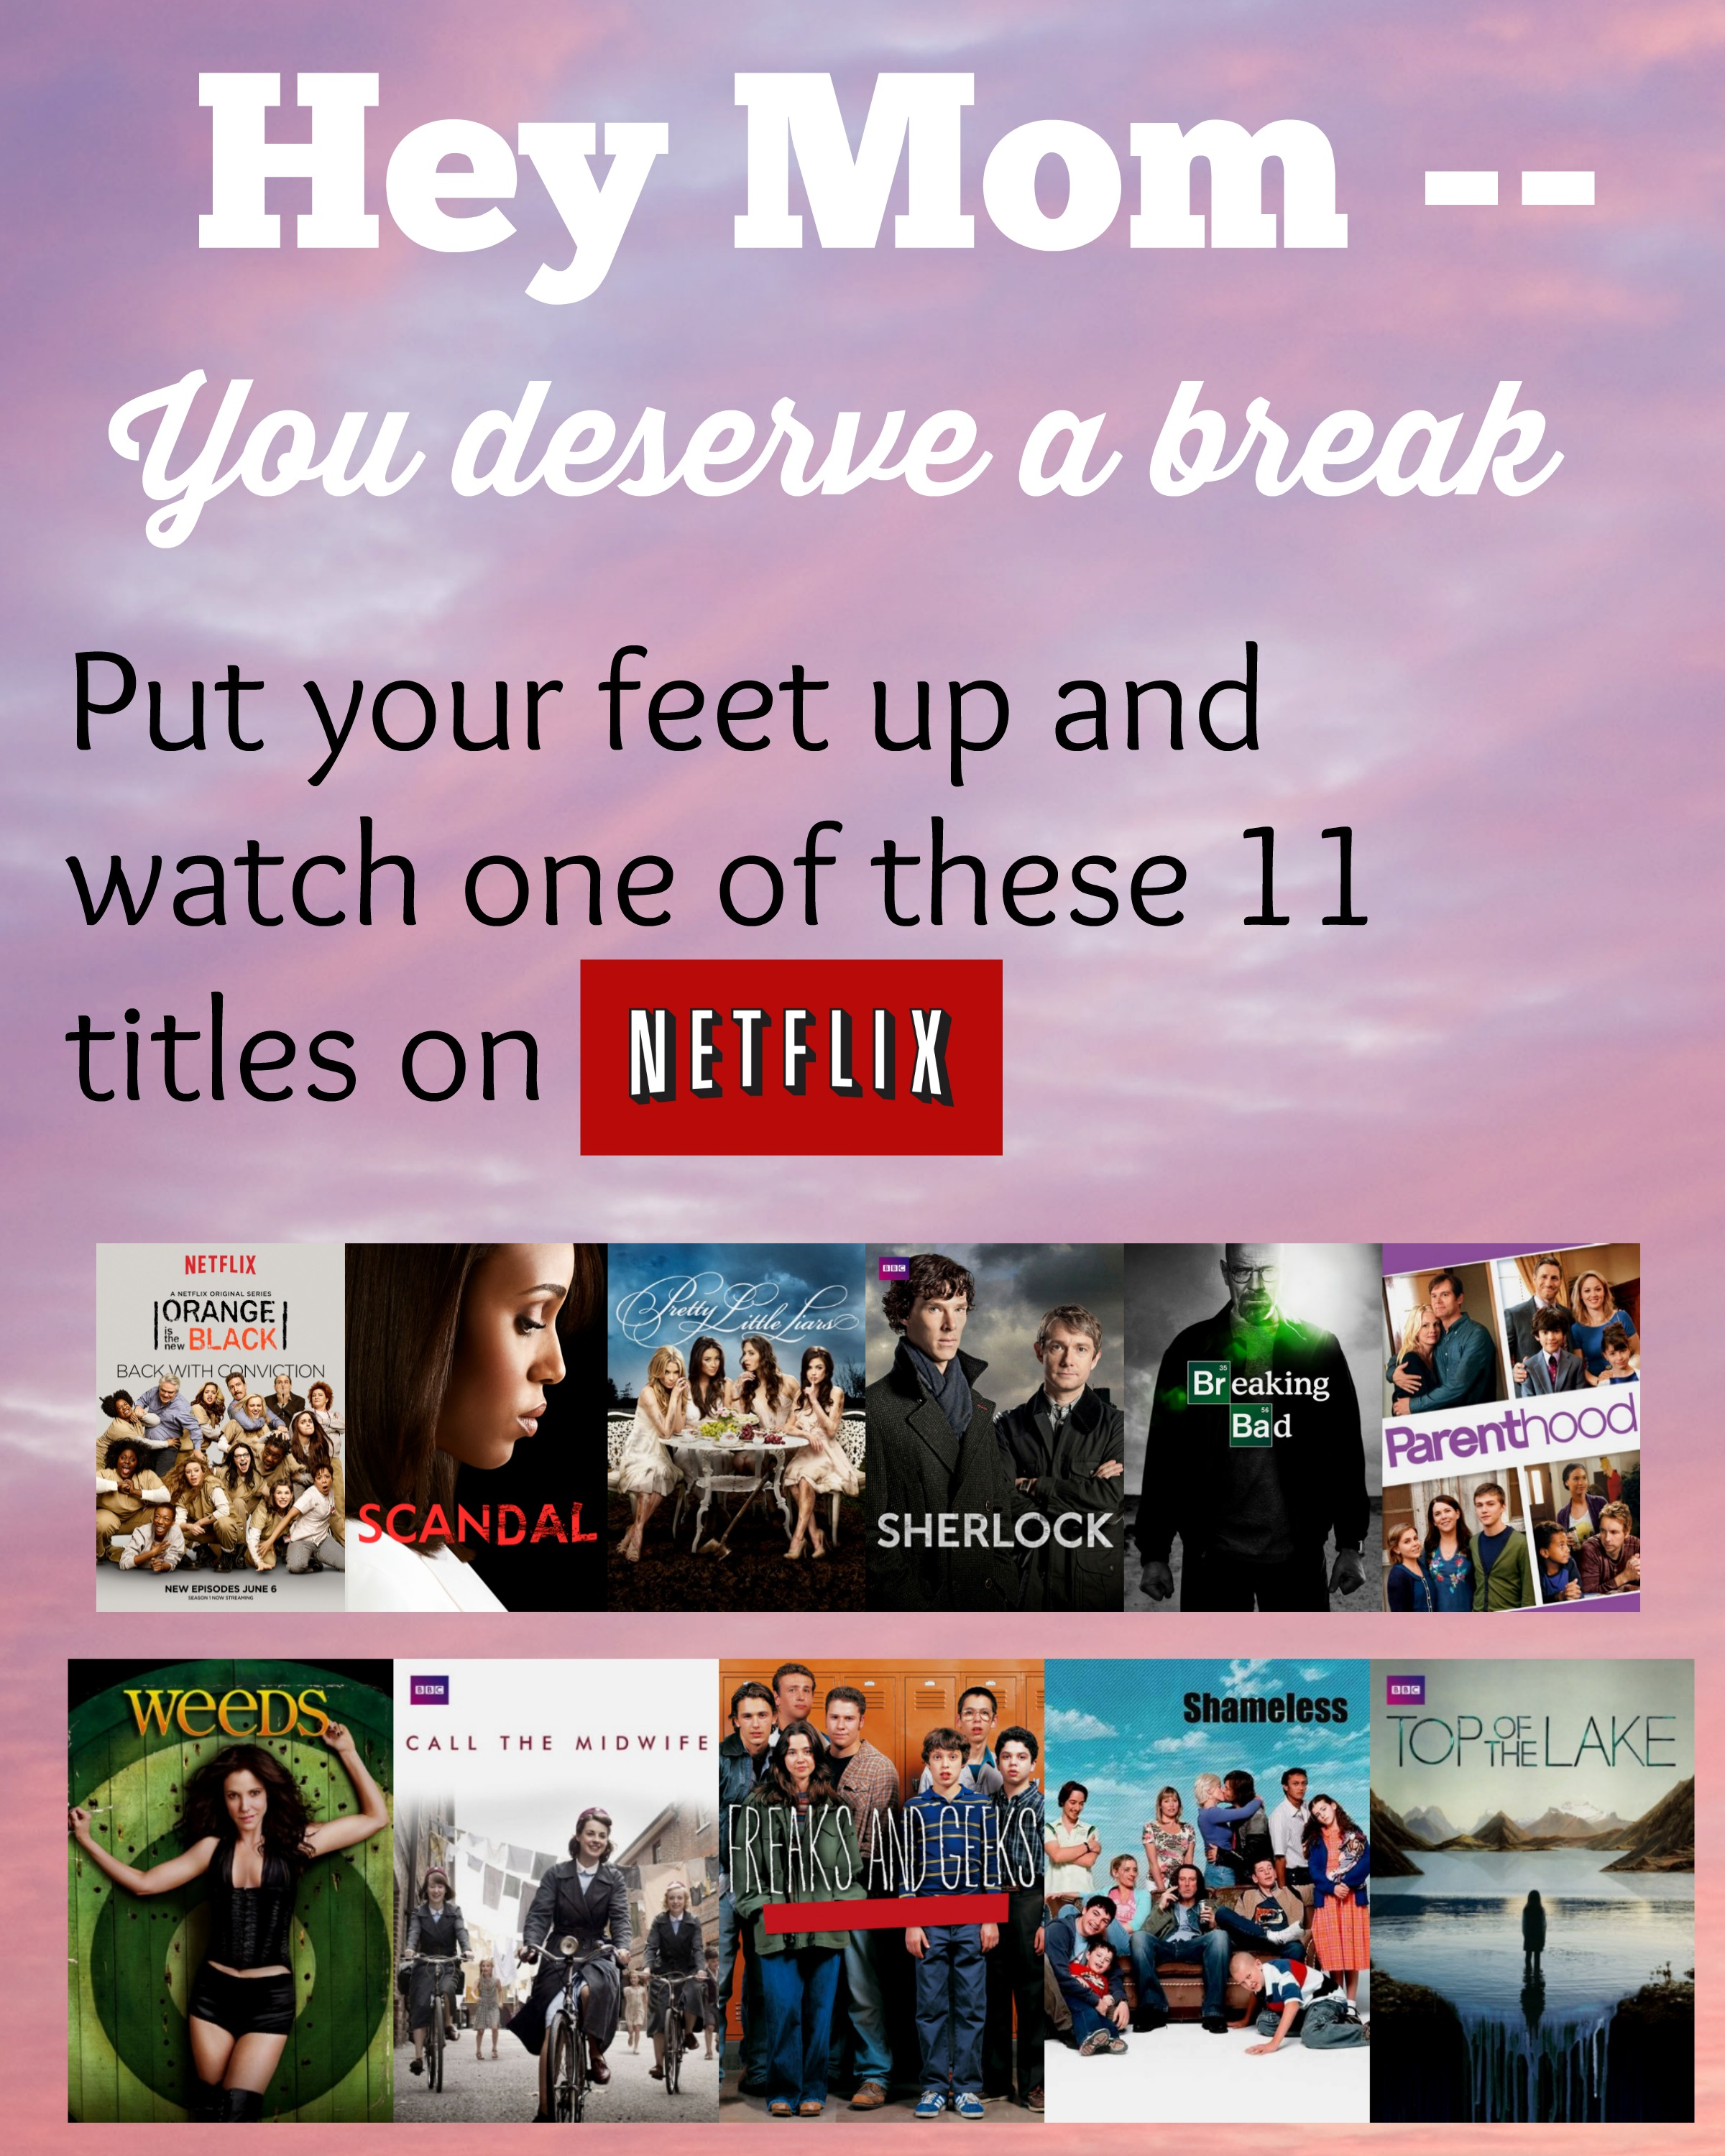 Hey Mom – Take a Break with these 11 Netflix Titles